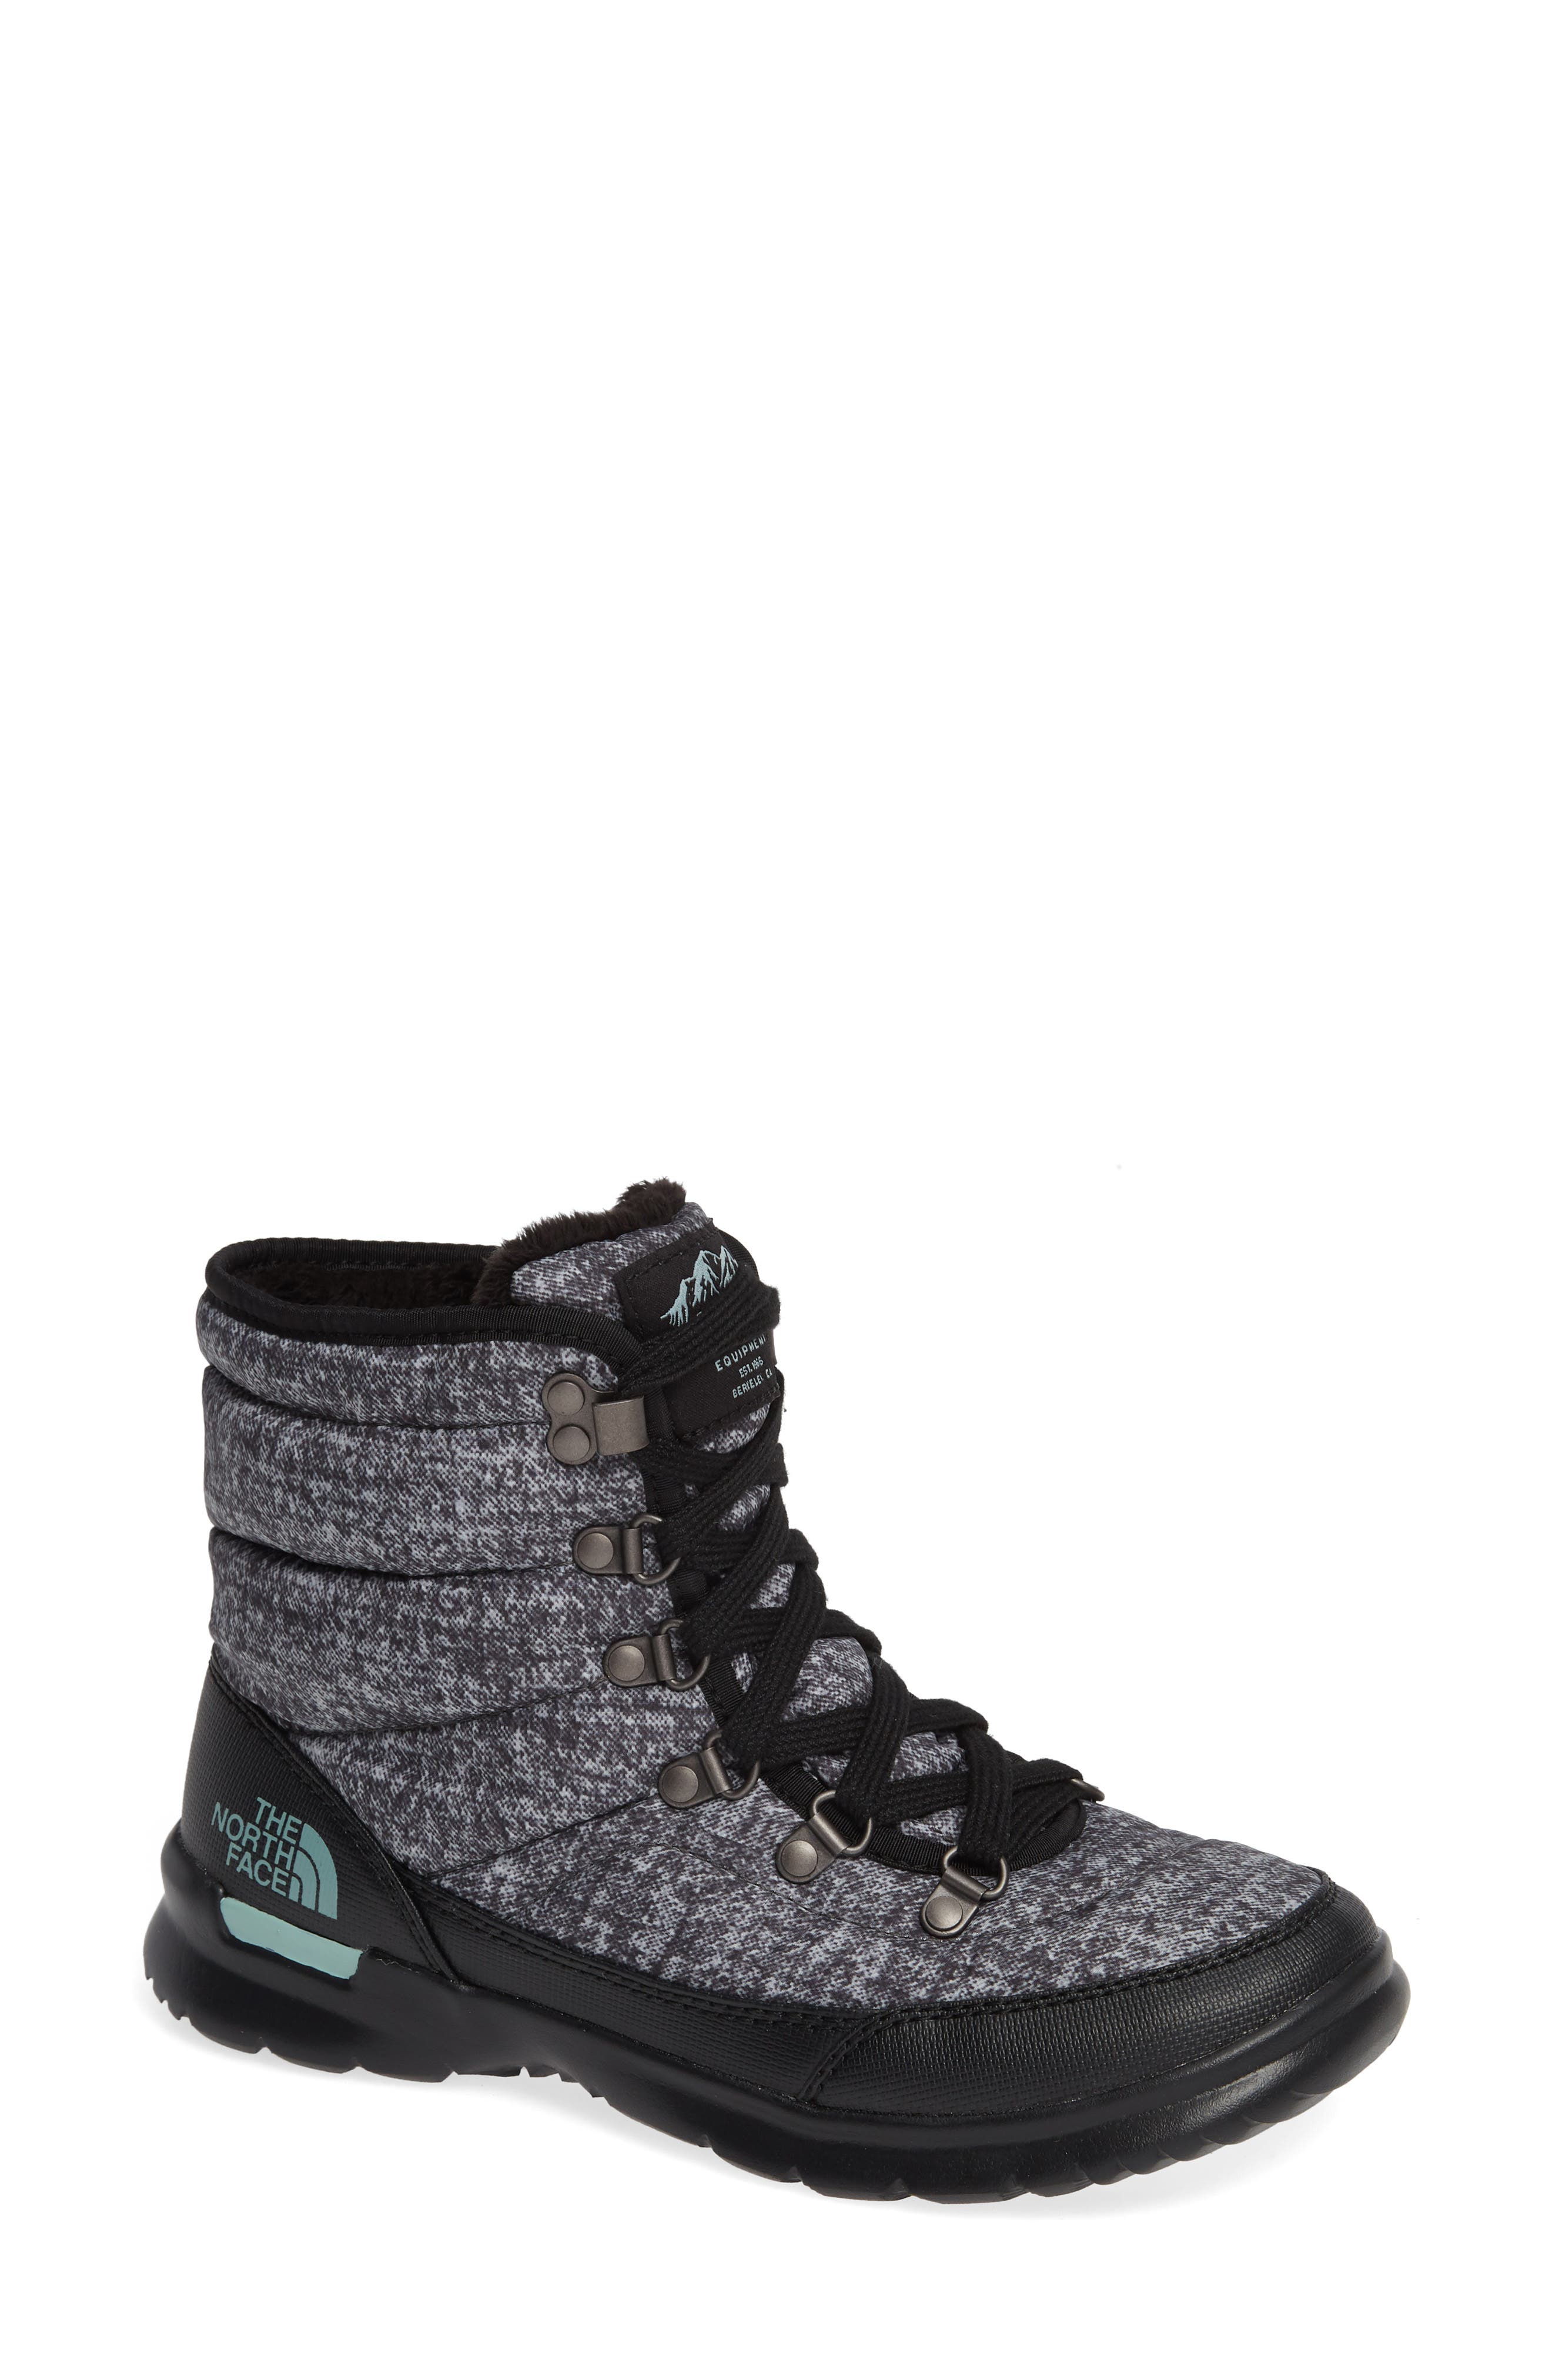 Lace II ThermoBall<sup>™</sup> Insulated Winter Boot,                         Main,                         color, HOUNDS TOOTH PRINT/ BLUE HAZE